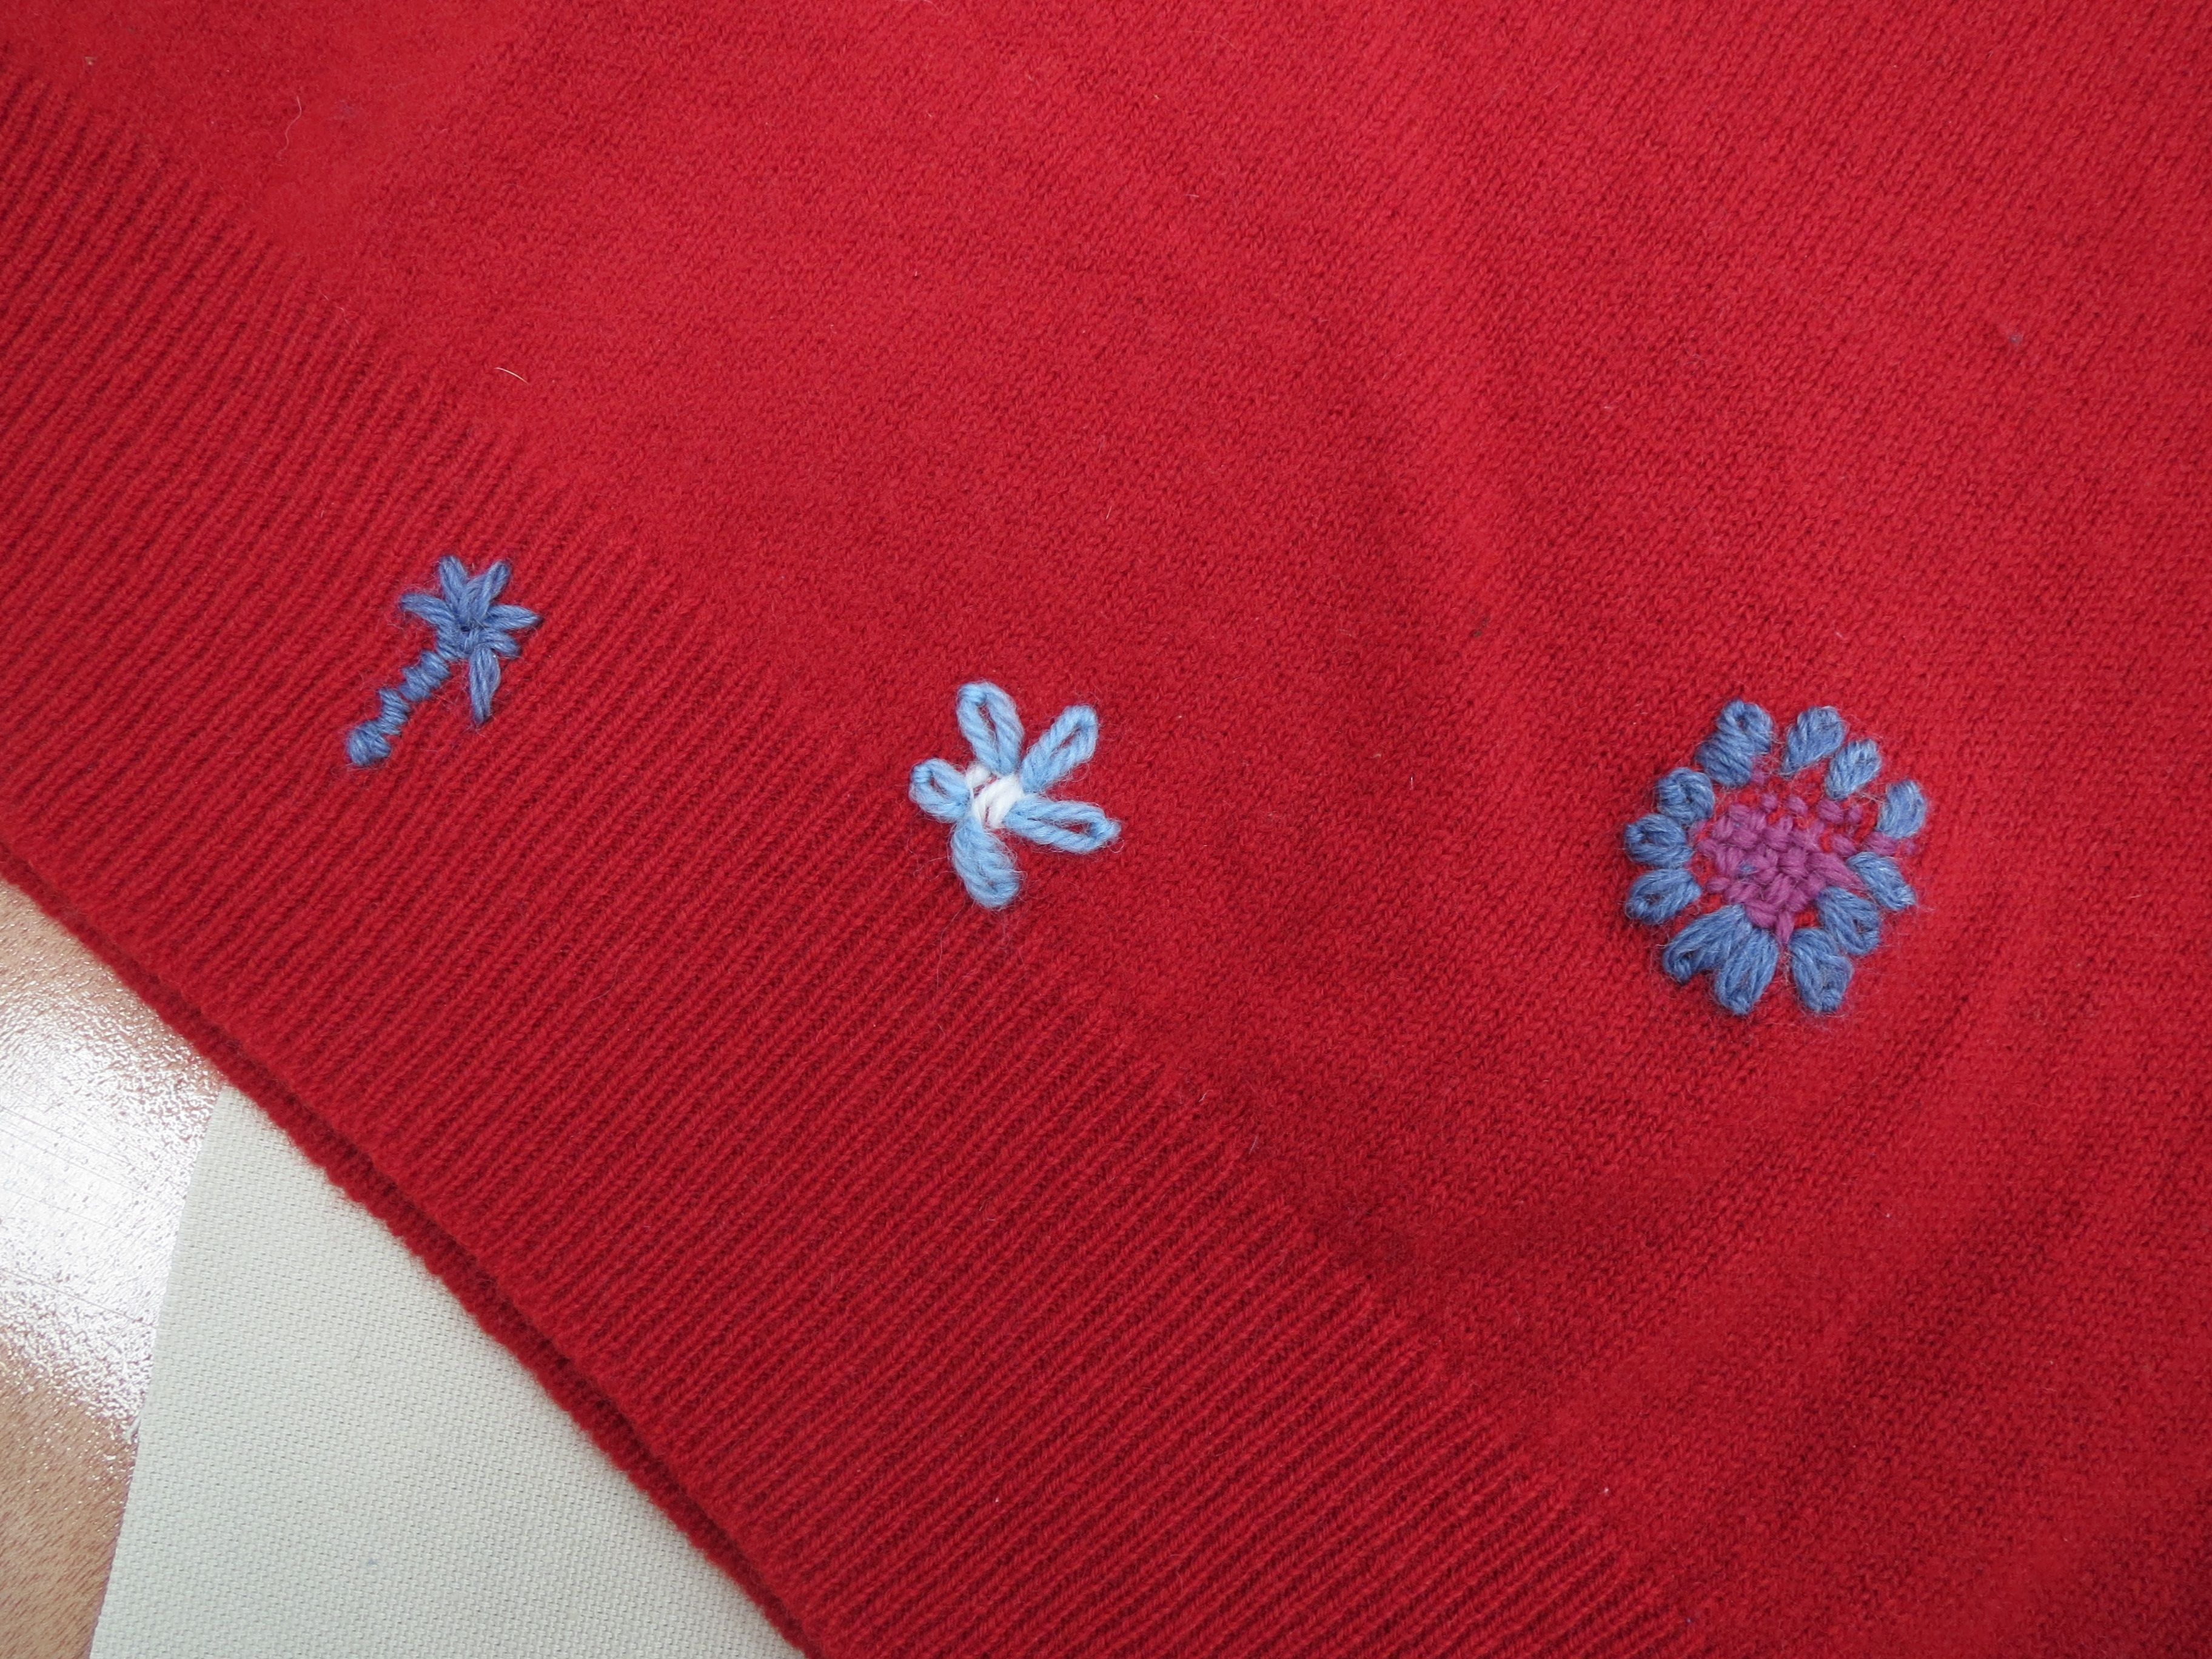 Moth holes repaired with floral embroidery stitches